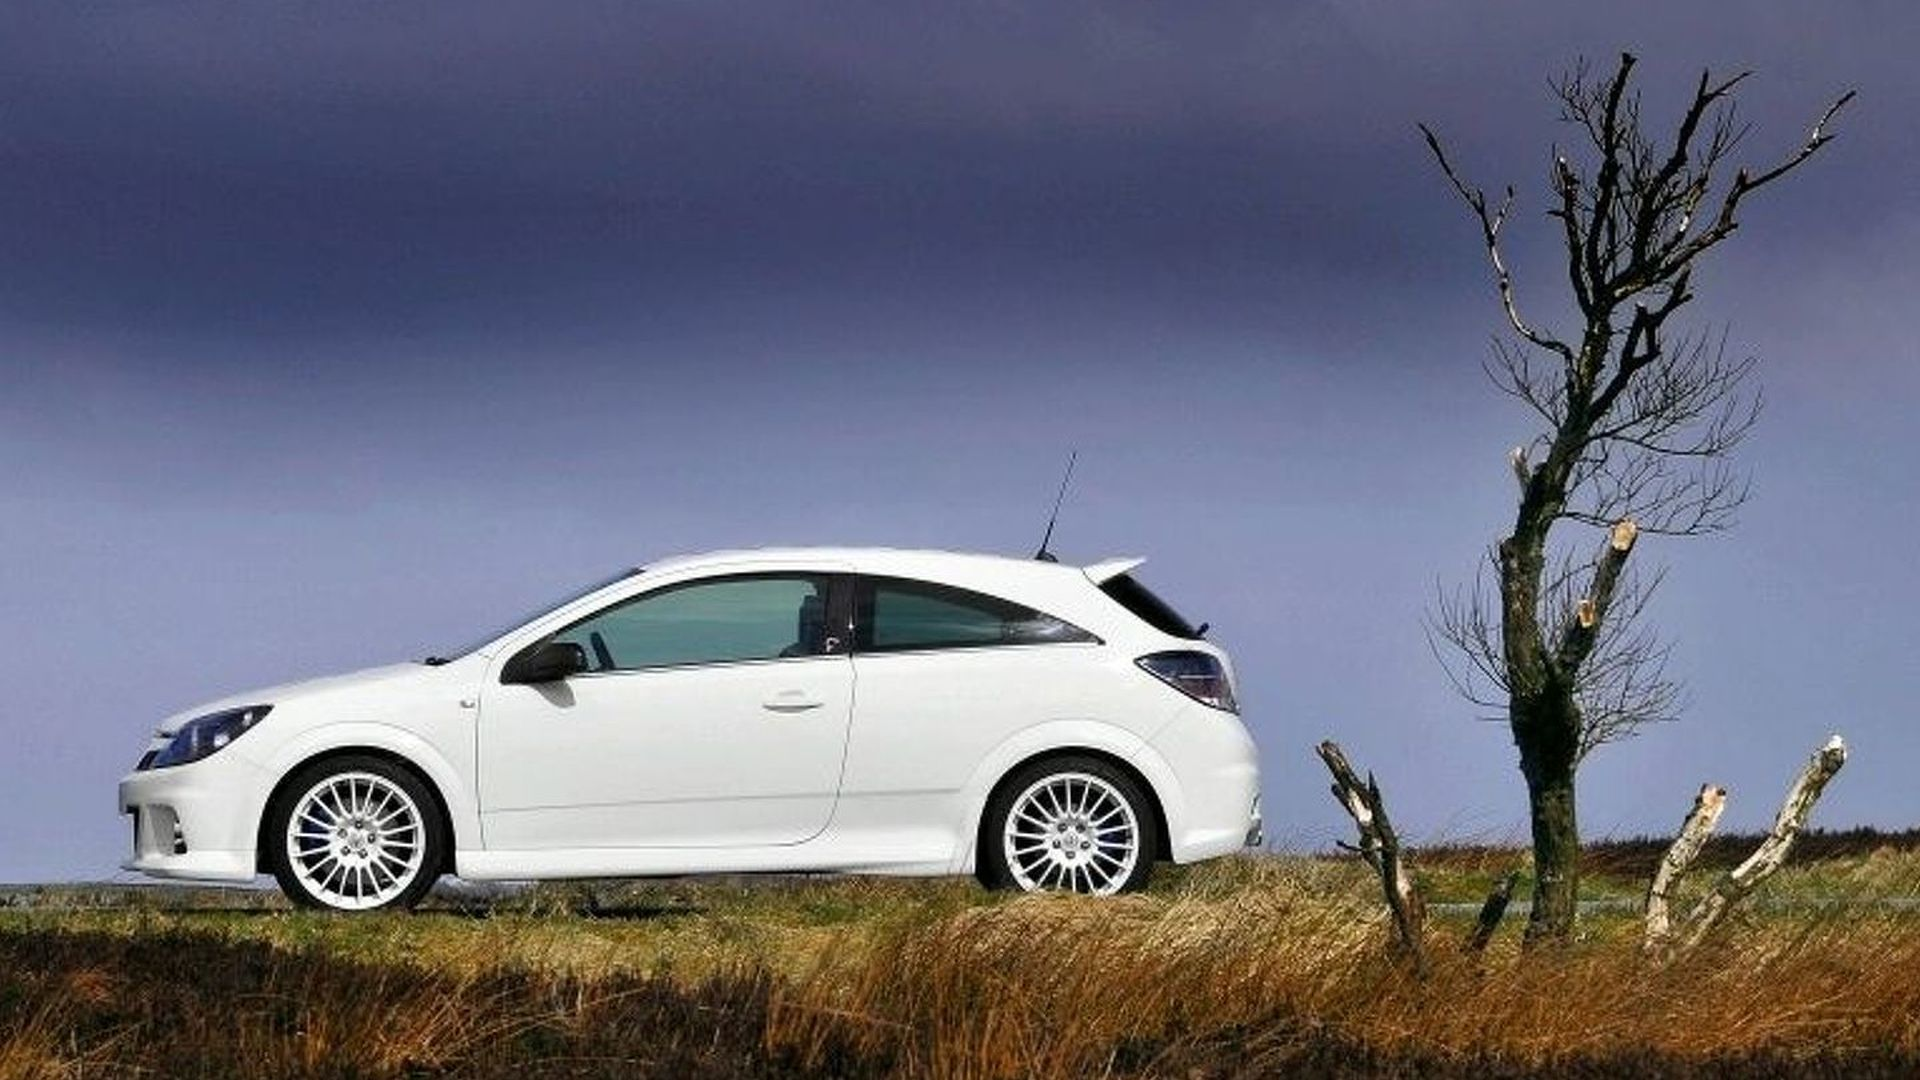 vauxhall astra vxr n rburgring edition hits showrooms. Black Bedroom Furniture Sets. Home Design Ideas